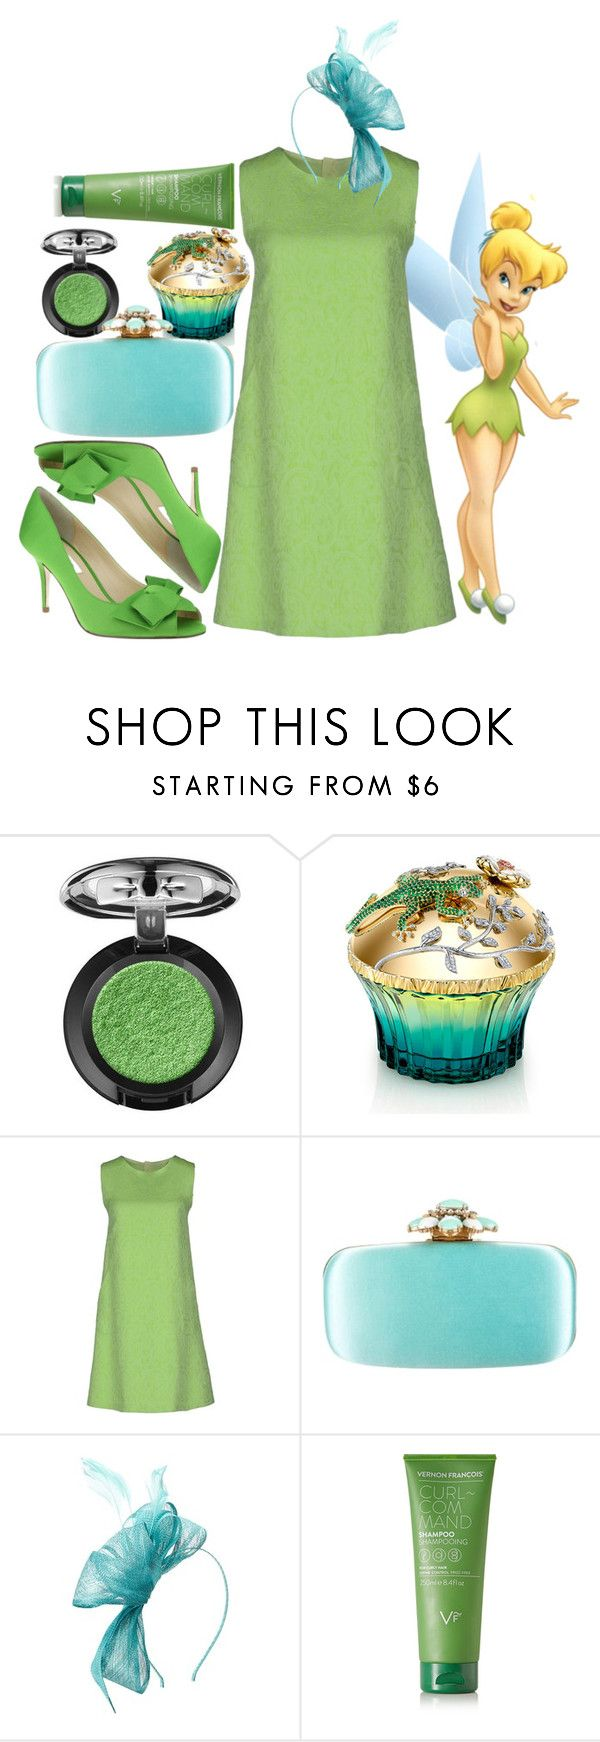 """""""Tinkerbell"""" by andy-likes-disney ❤ liked on Polyvore featuring House of Sillage, Oscar de la Renta, Scala, Vernon François and Nina"""